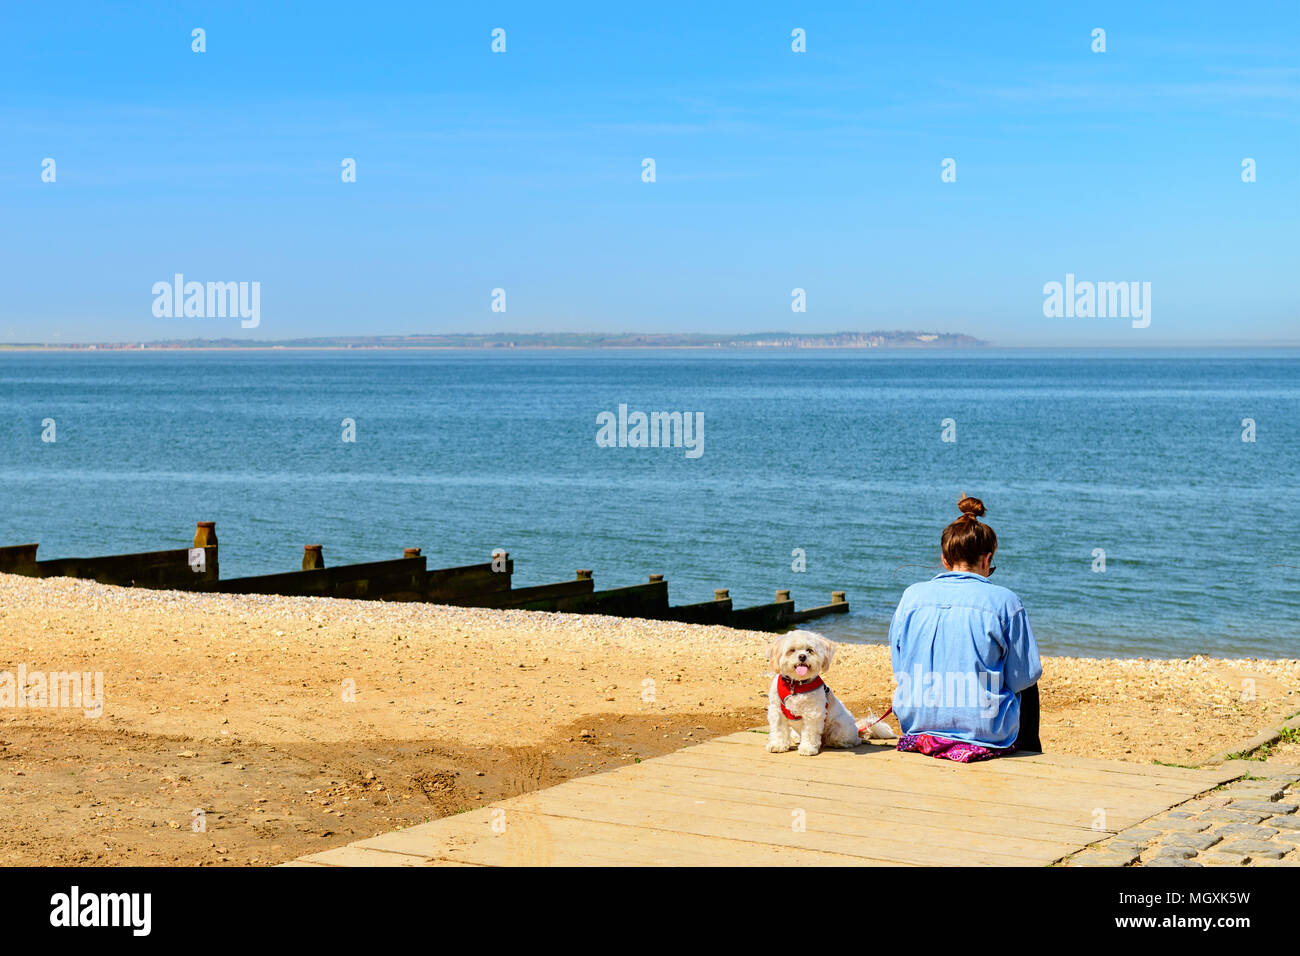 young-woman-sitting-reading-alone-on-a-b